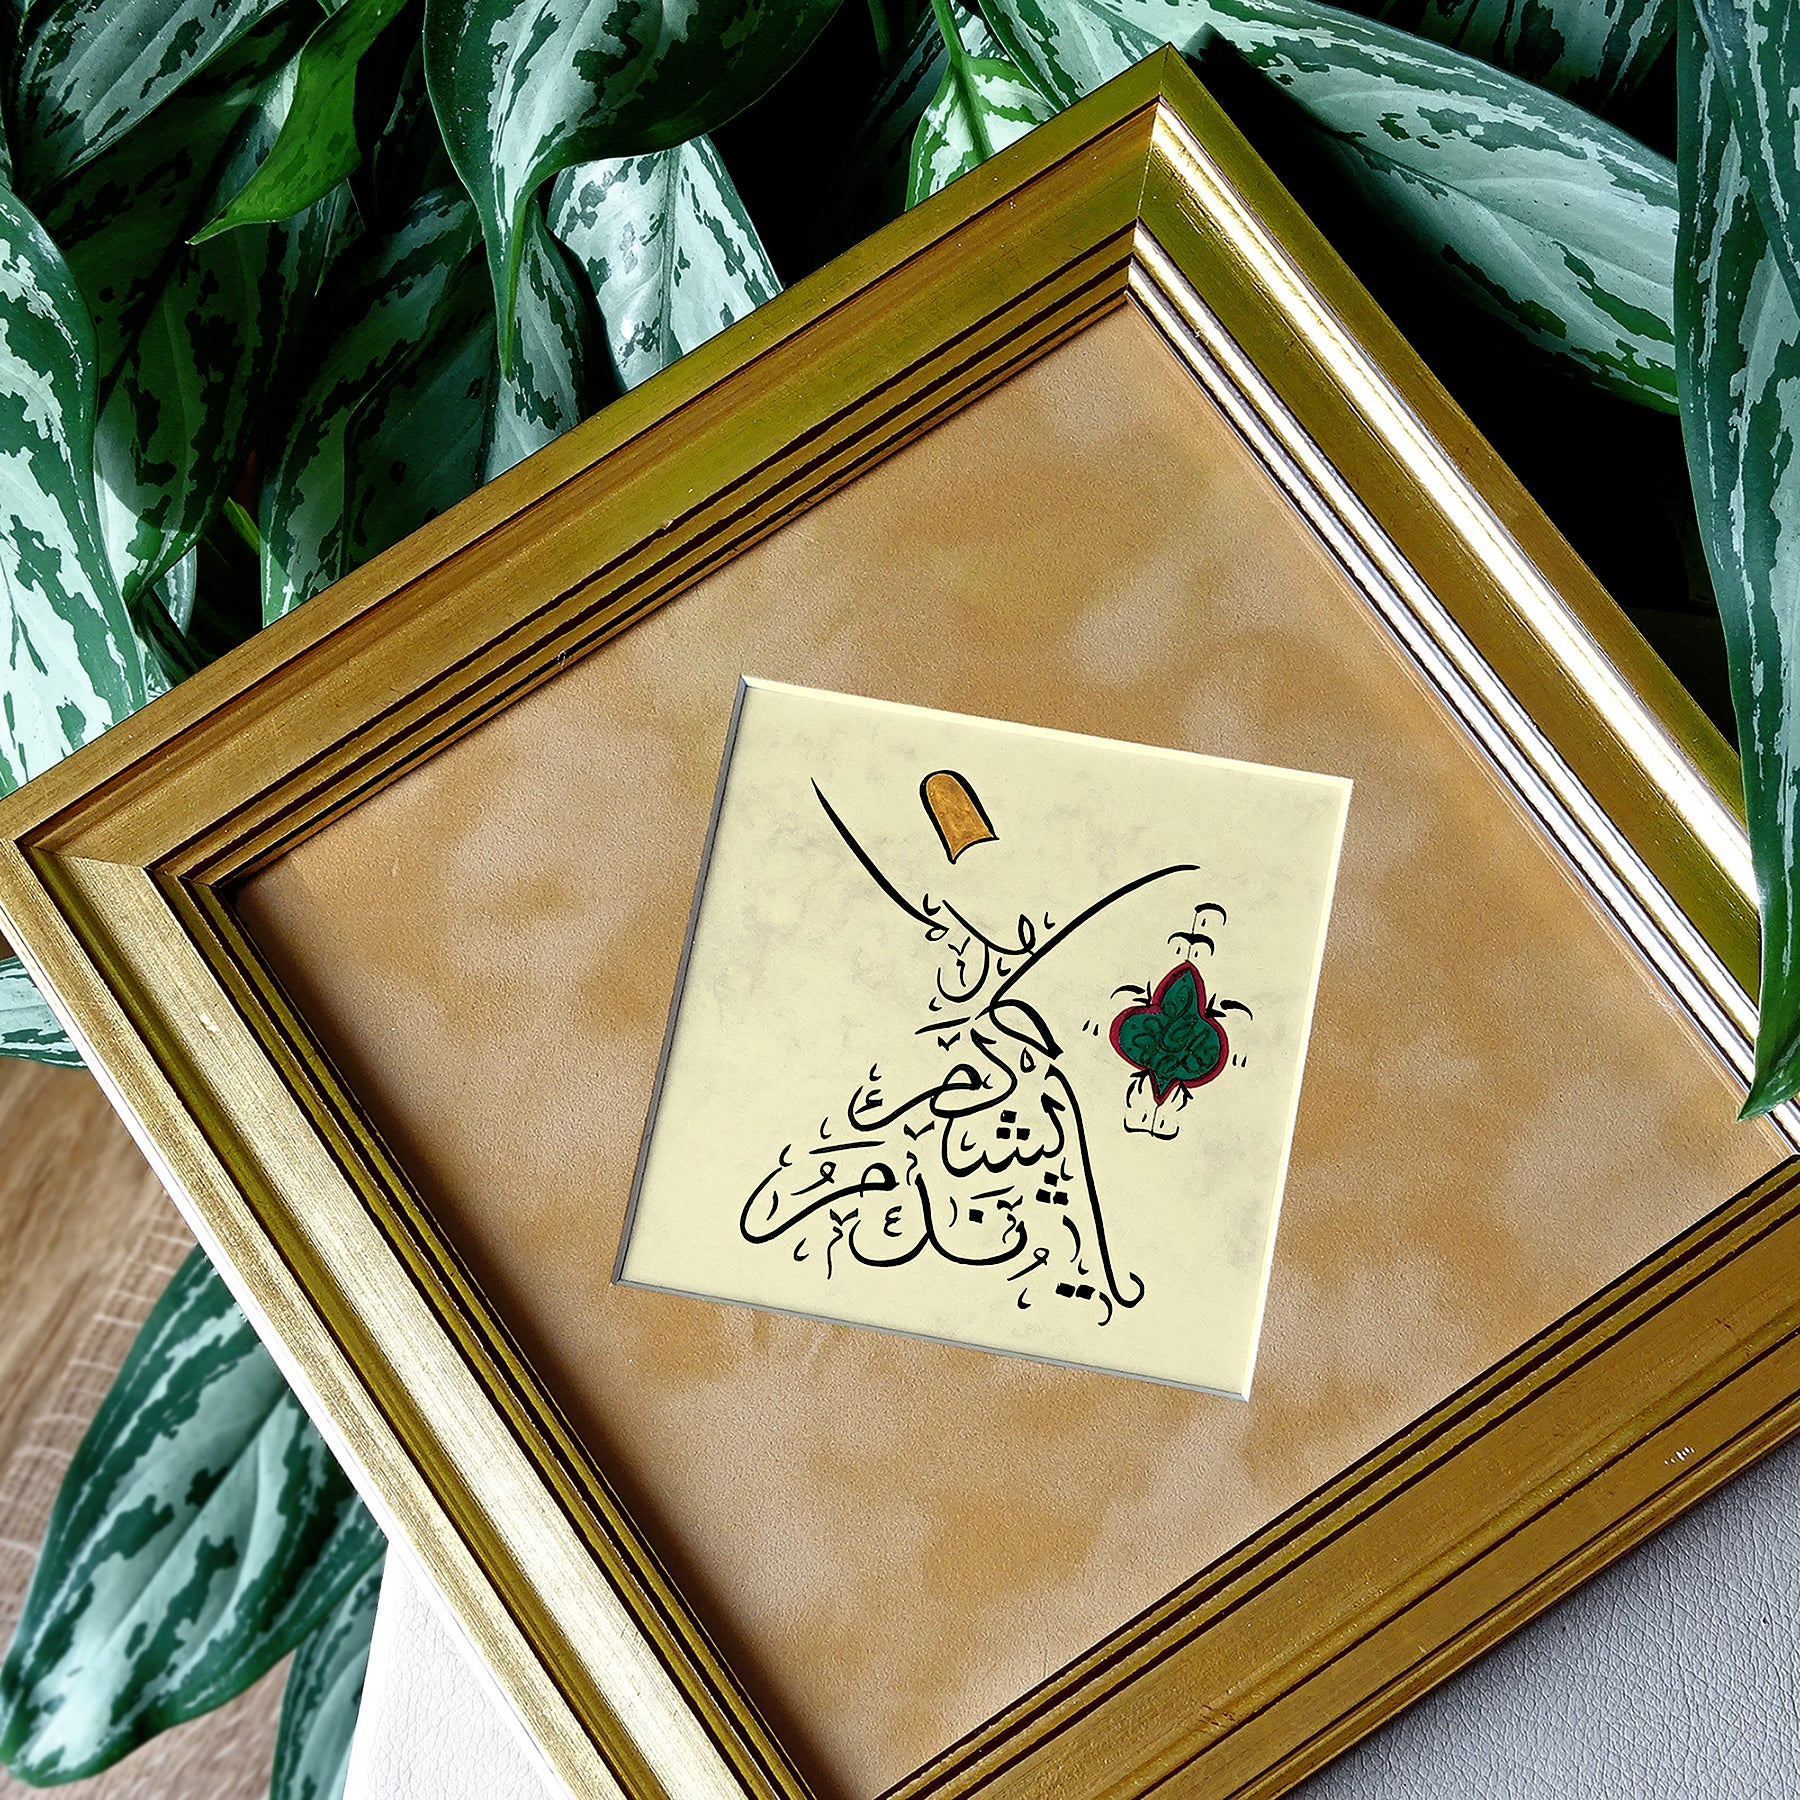 Whirling Dervish Art You love HIM so that HE loves you, ORIGINAL Islam Calligraphy Frame Maroon, Sufi Painting, Islamic Wall Hanging Gift